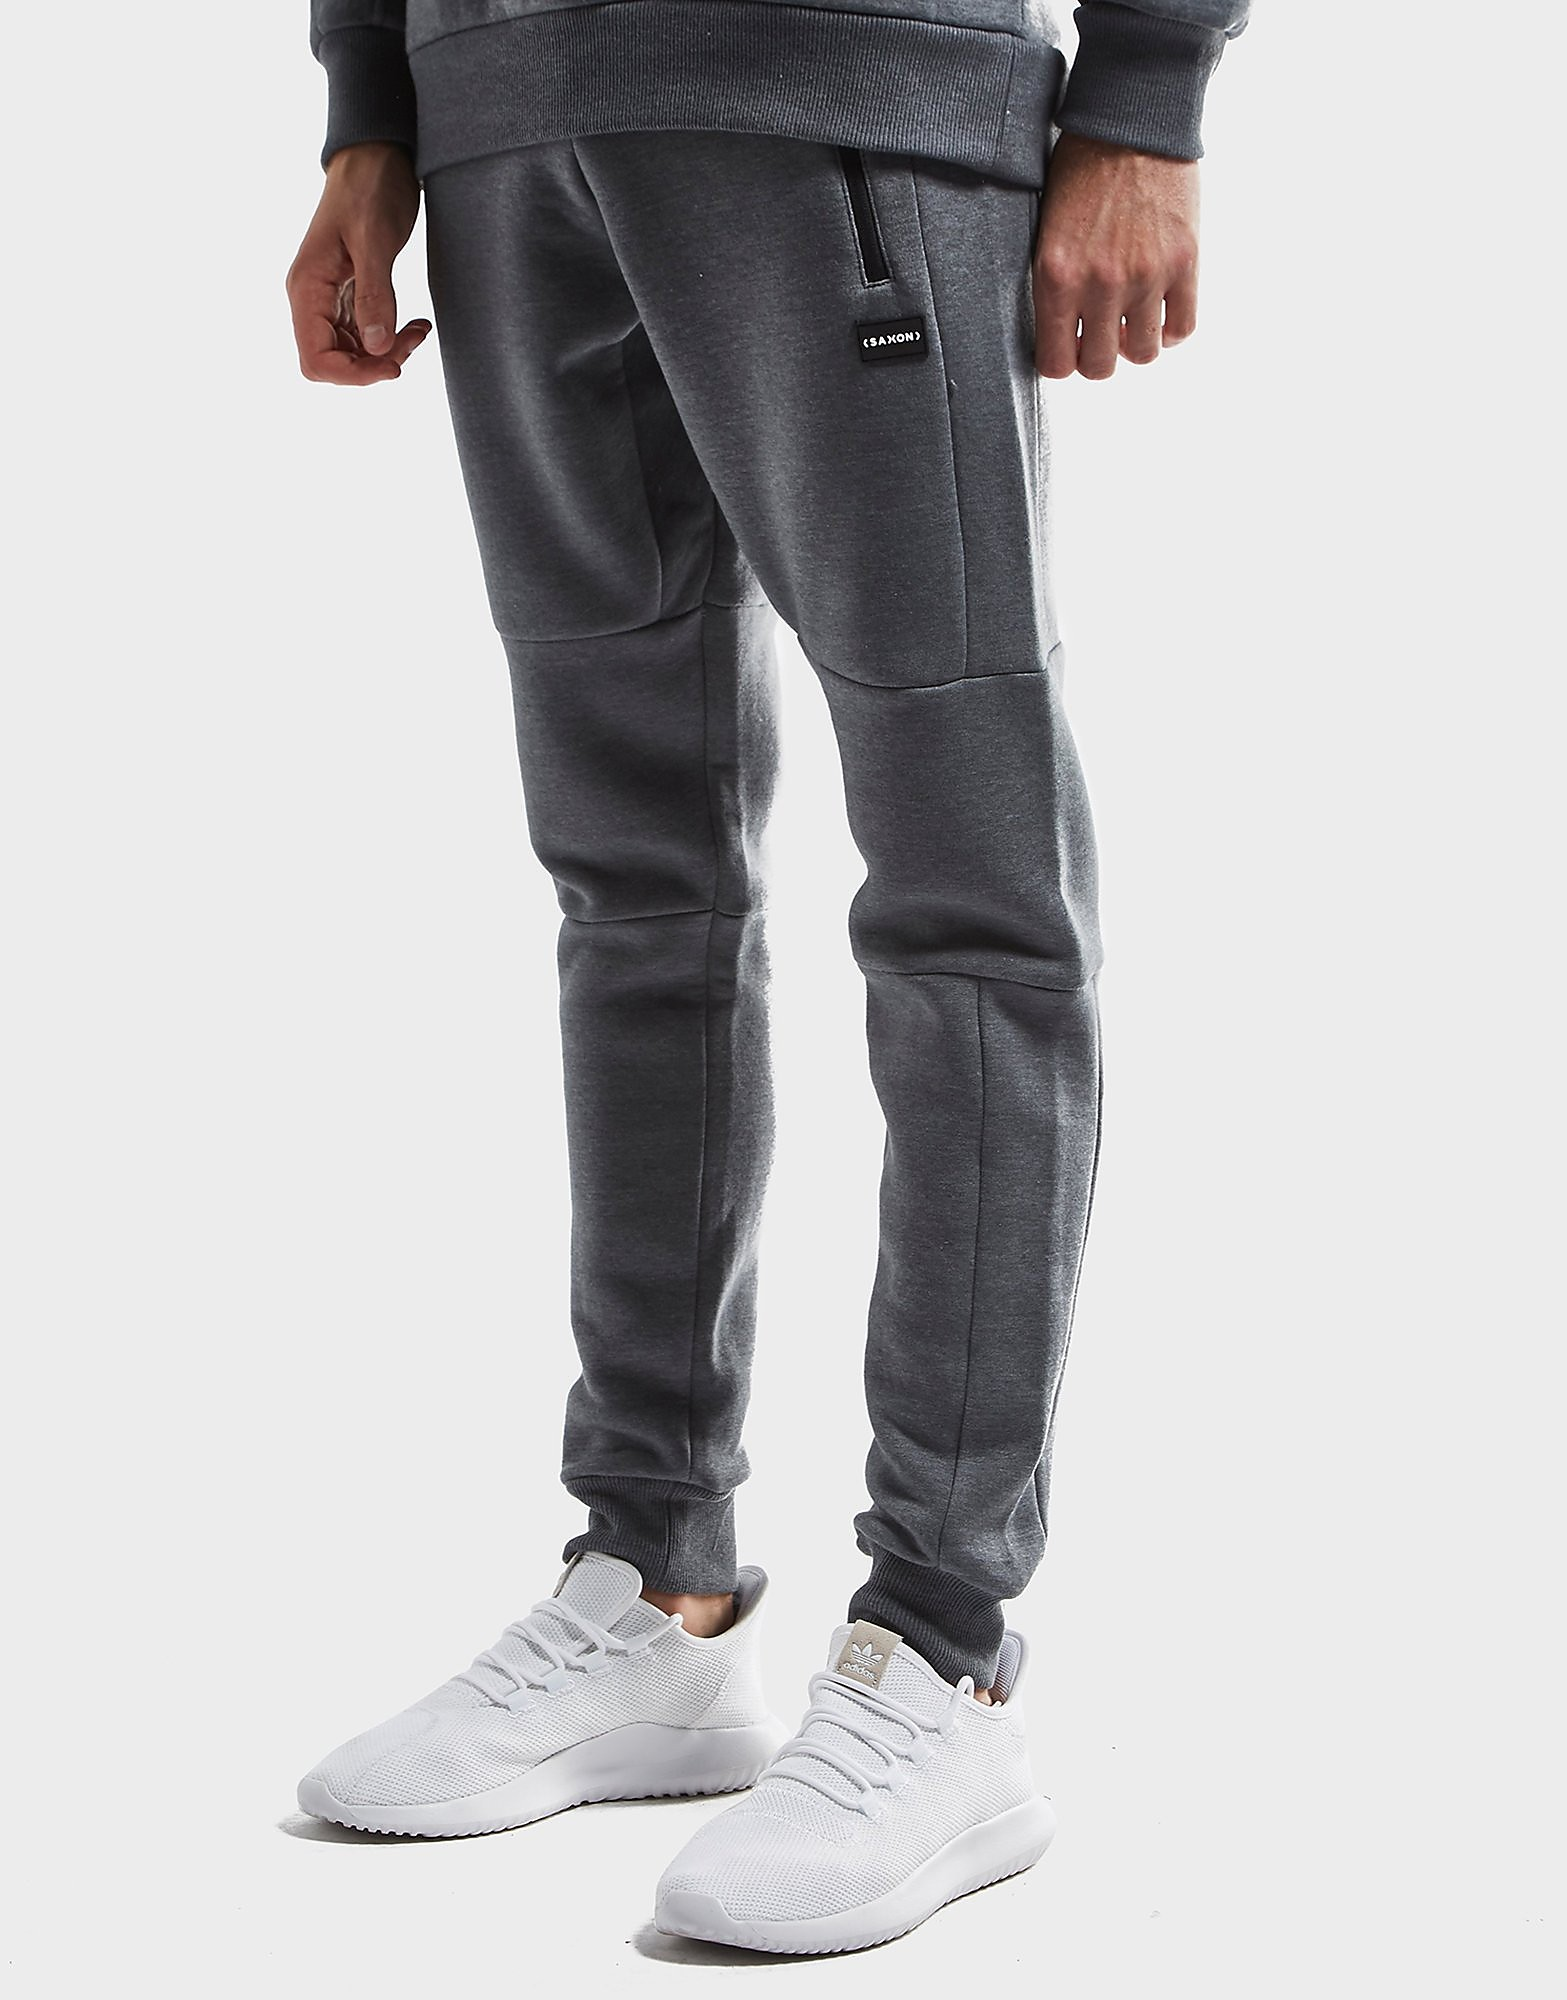 One True Saxon Whip Joggers - Exclusive